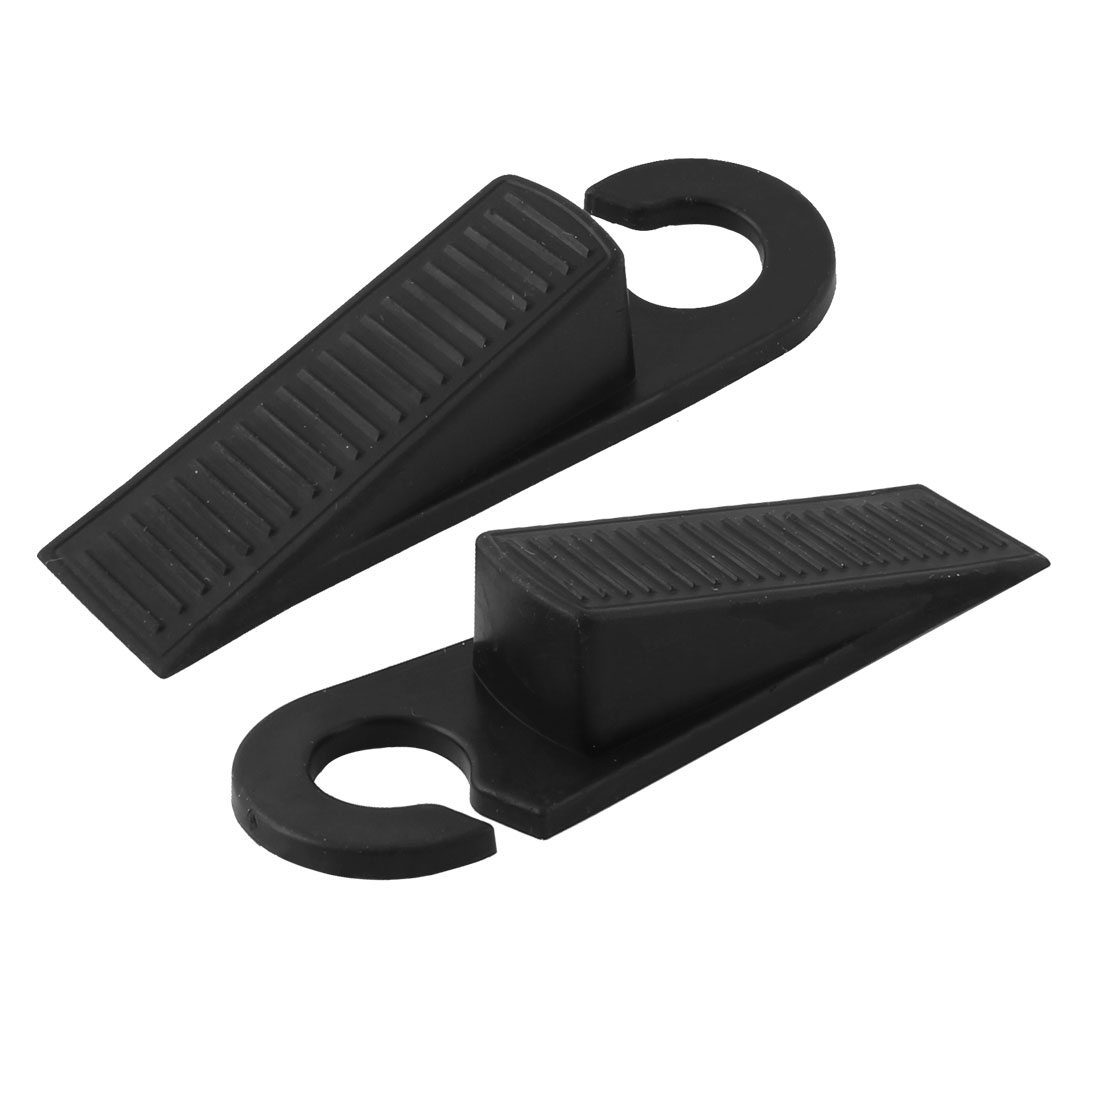 Home Office Floor Rubber Anti-slip Door Stopper Guard Protector Black Pair